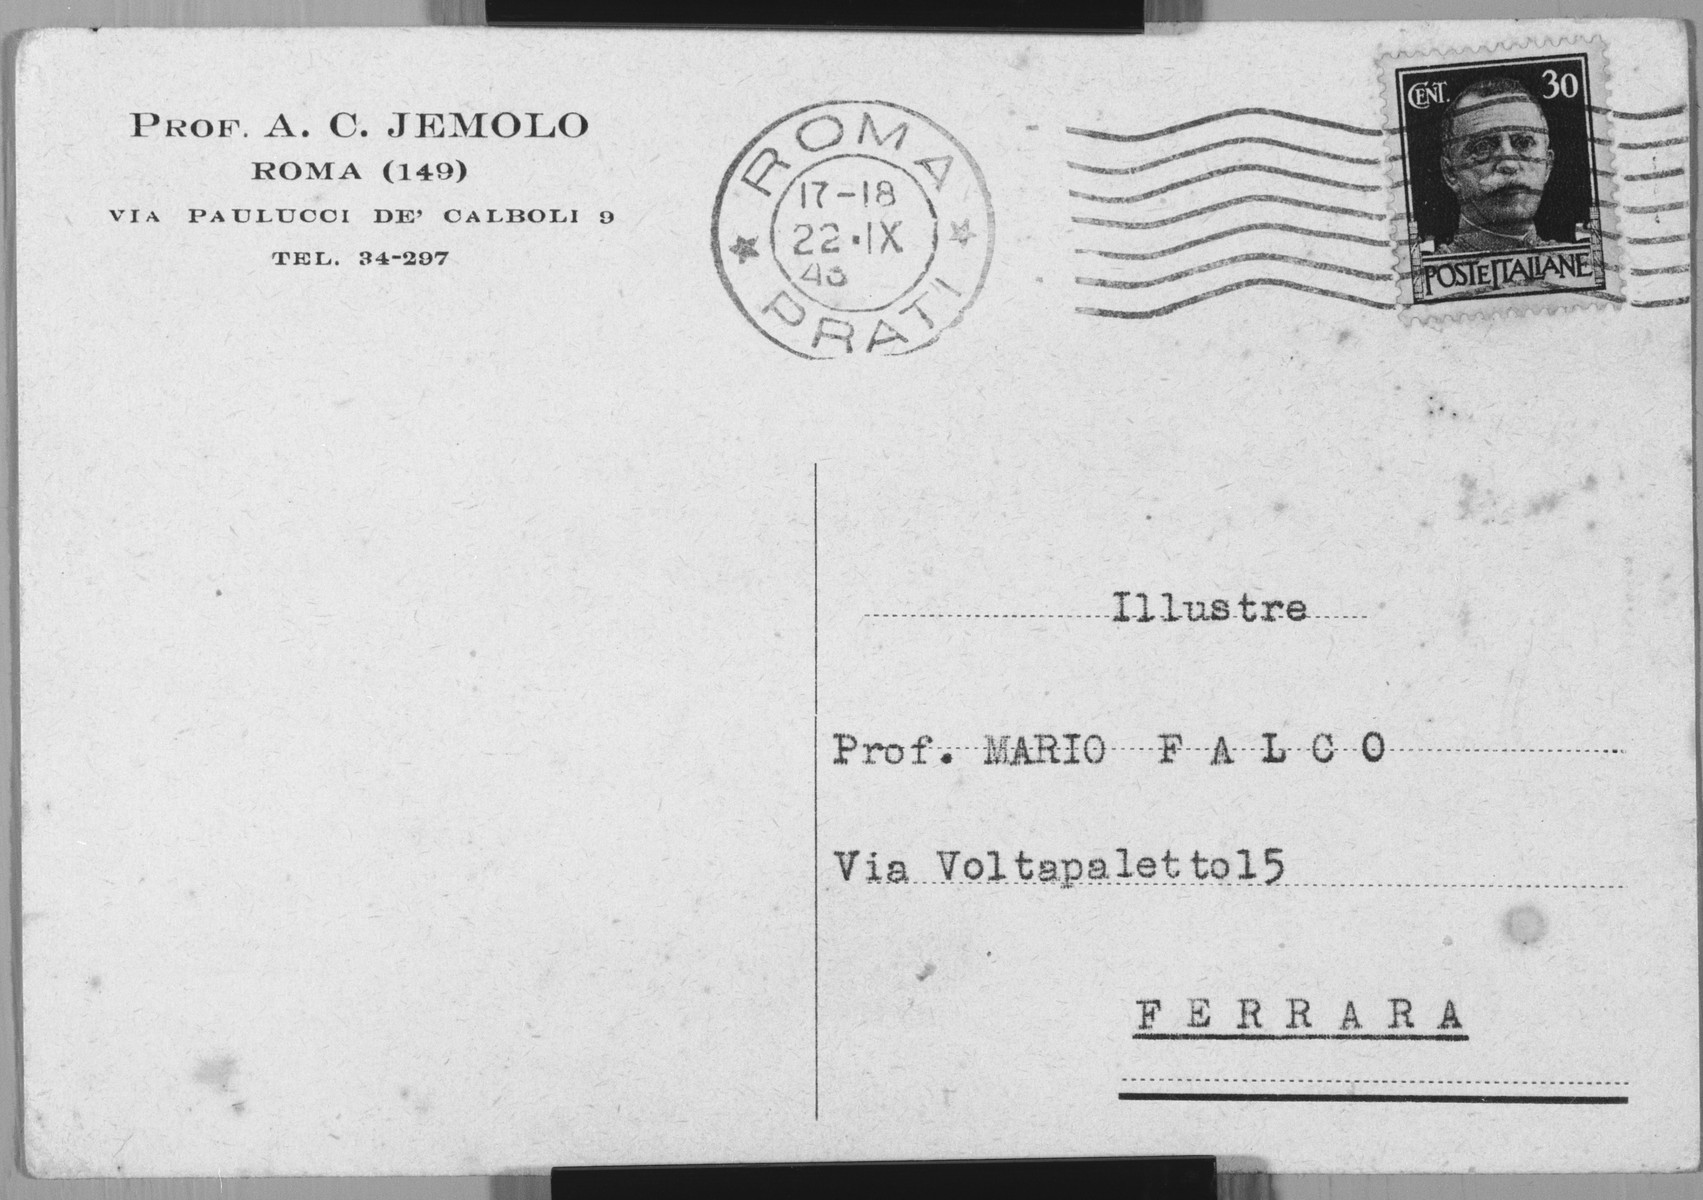 Postcard from Arturo Carlo Jemolo to the Falco family letting them know in coded language that they can hide in his home.